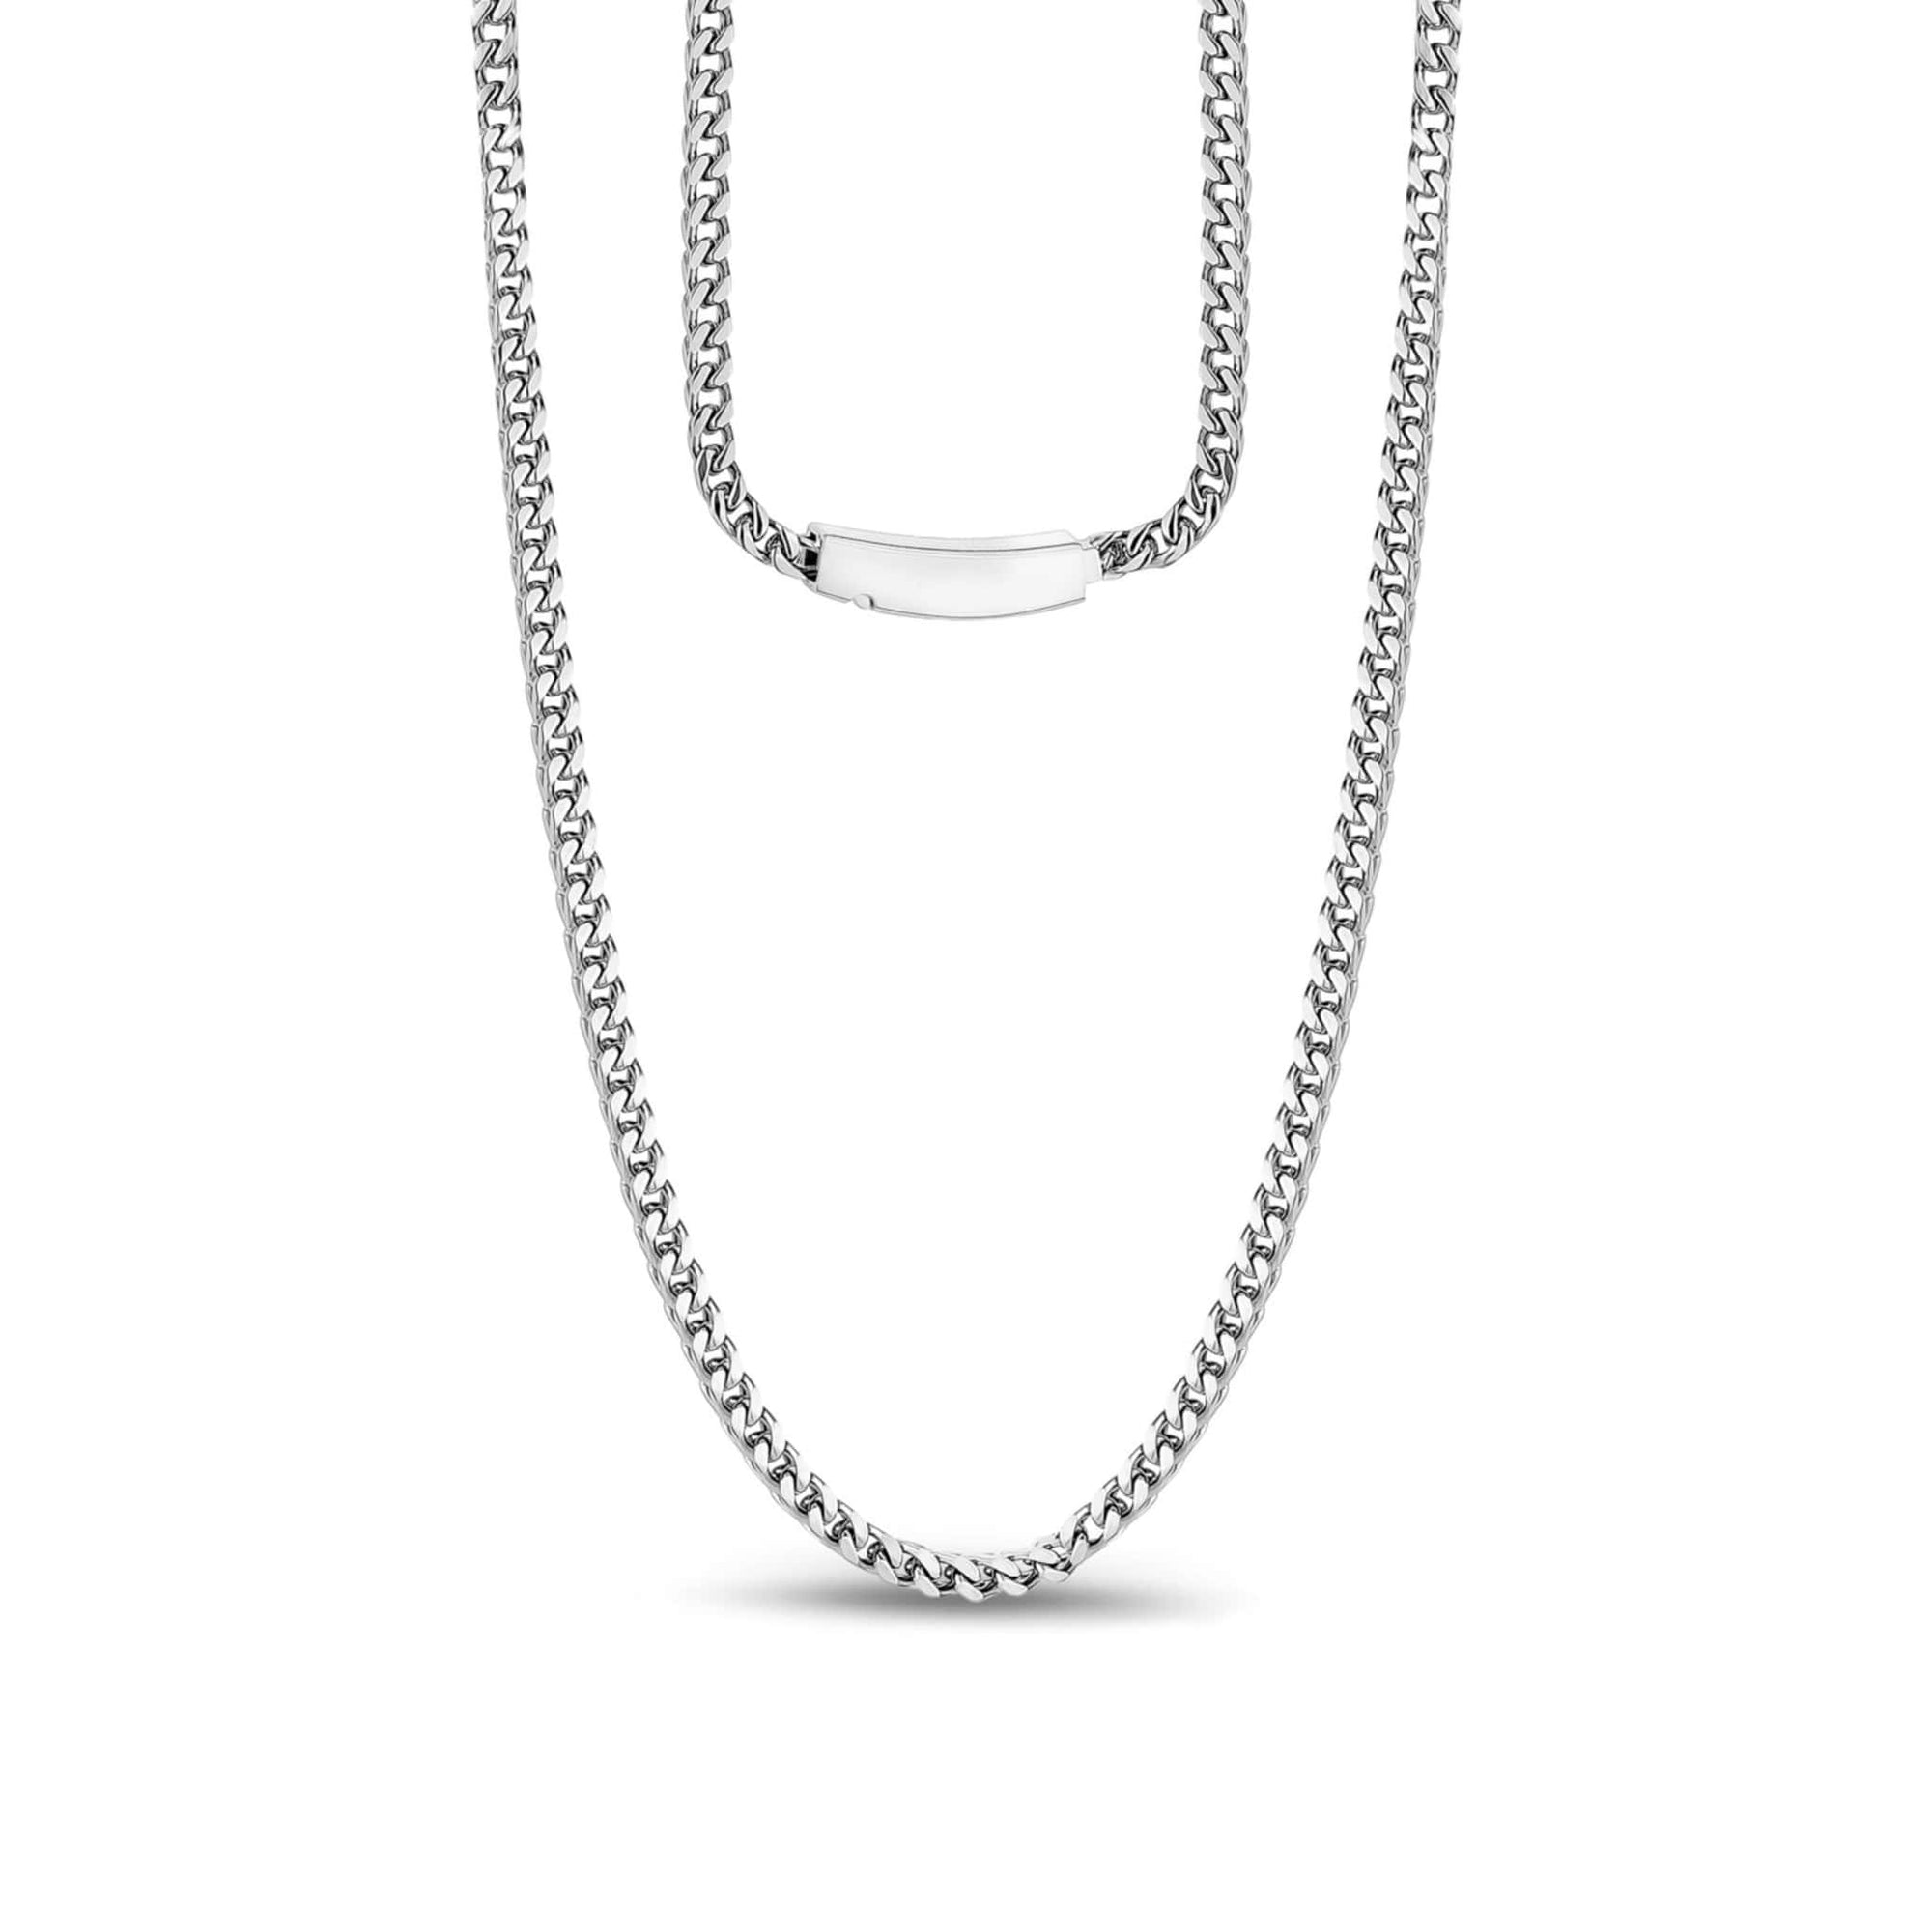 3mm Stainless Steel Franco Link Necklace at Arman's Jewellers